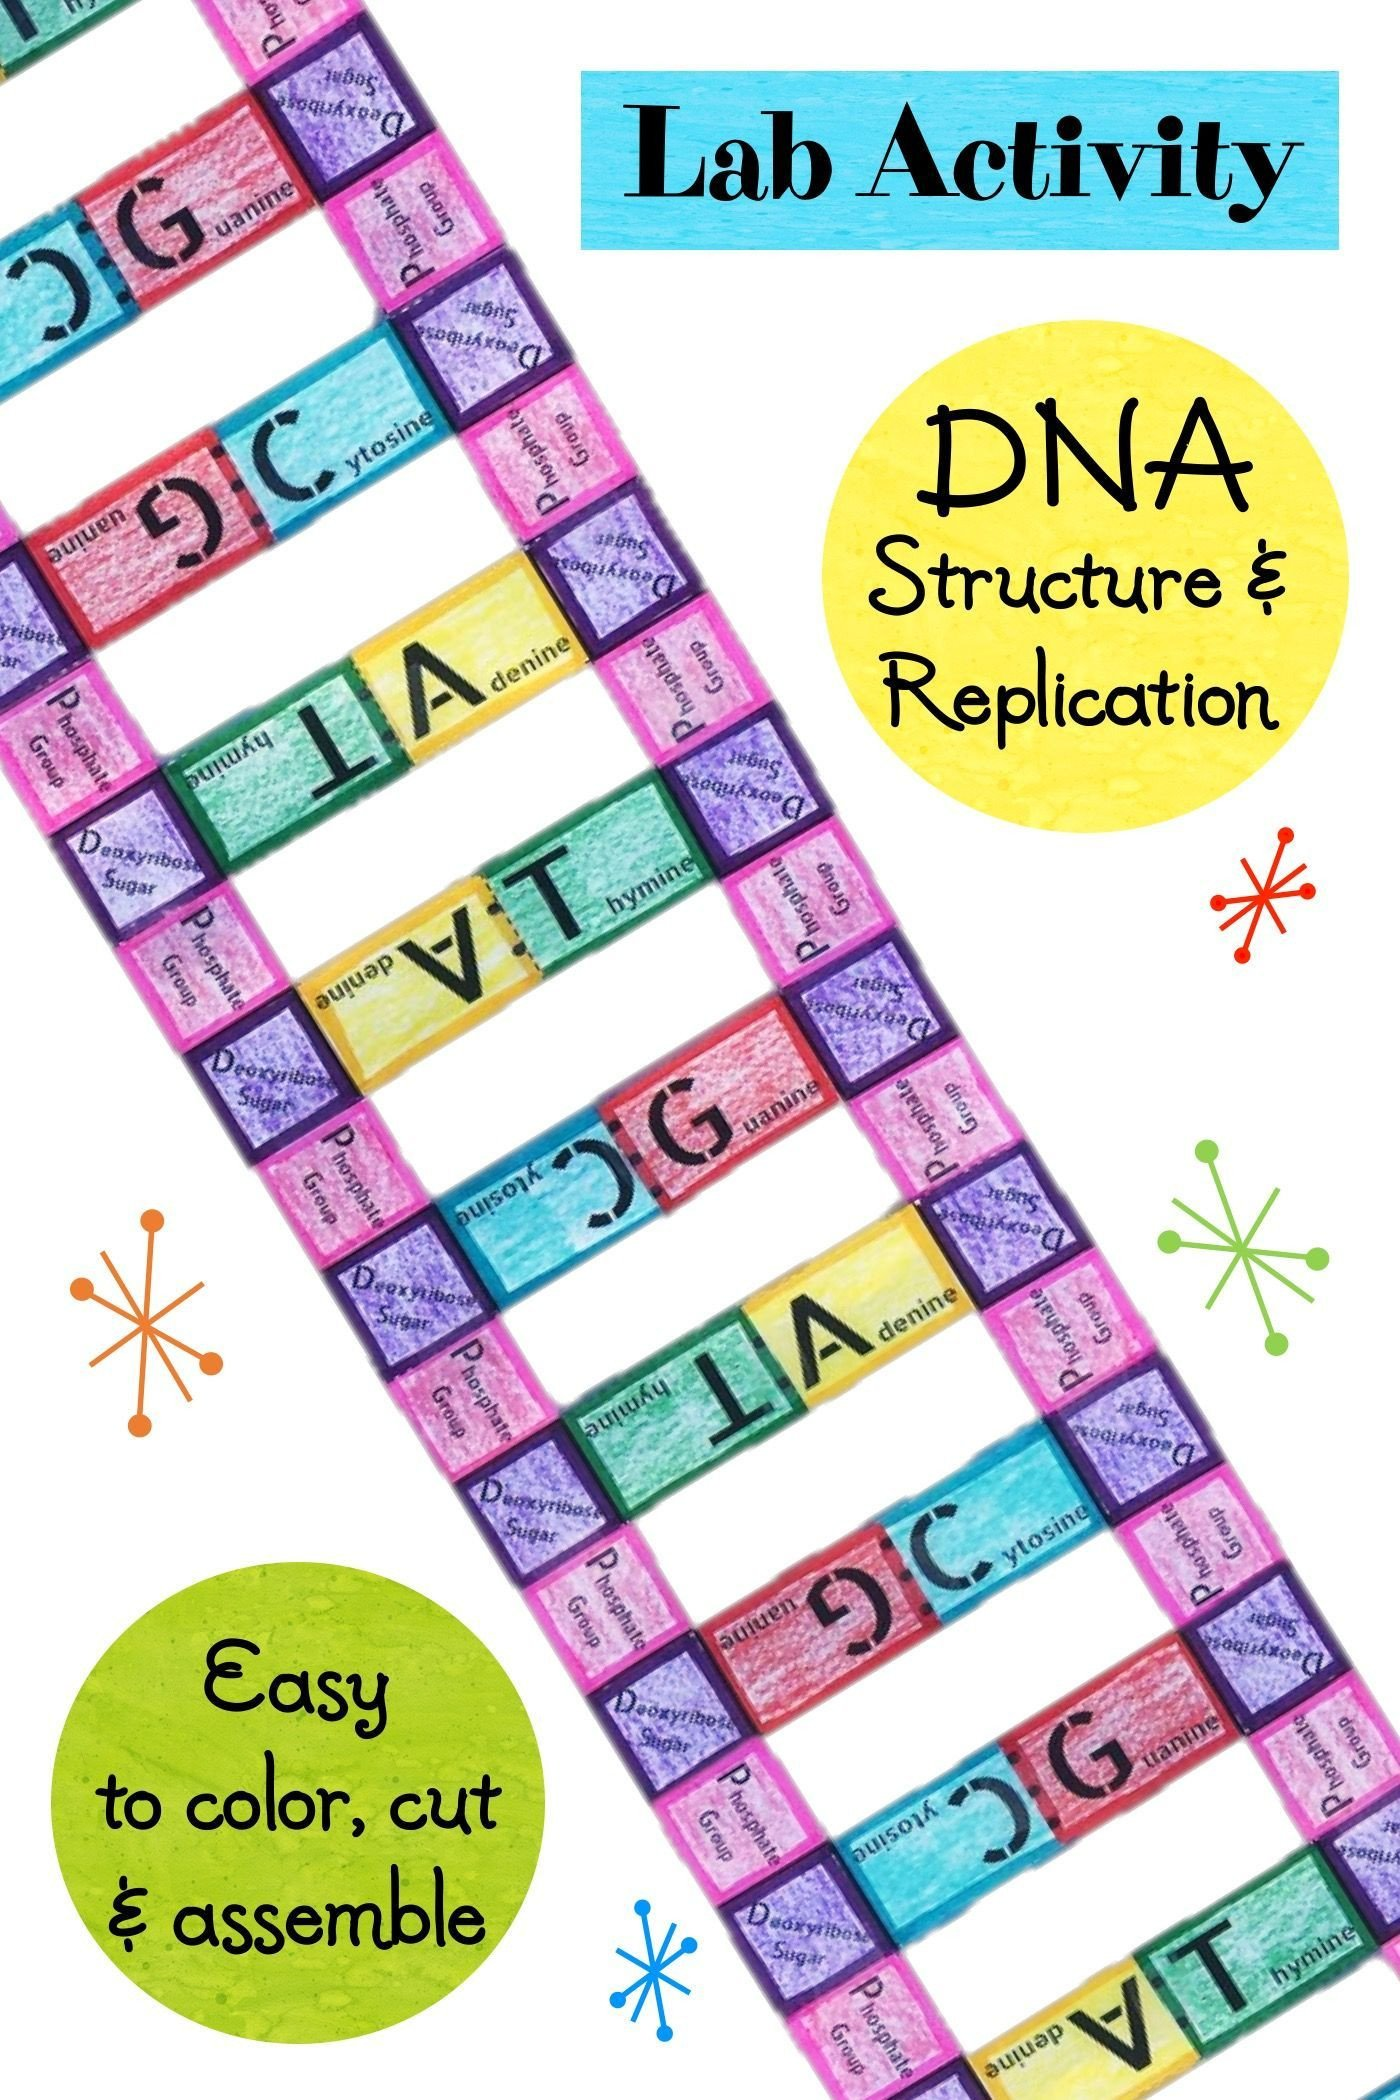 Skills Worksheet Dna Structure Lab Activity Dna Structure and Replication